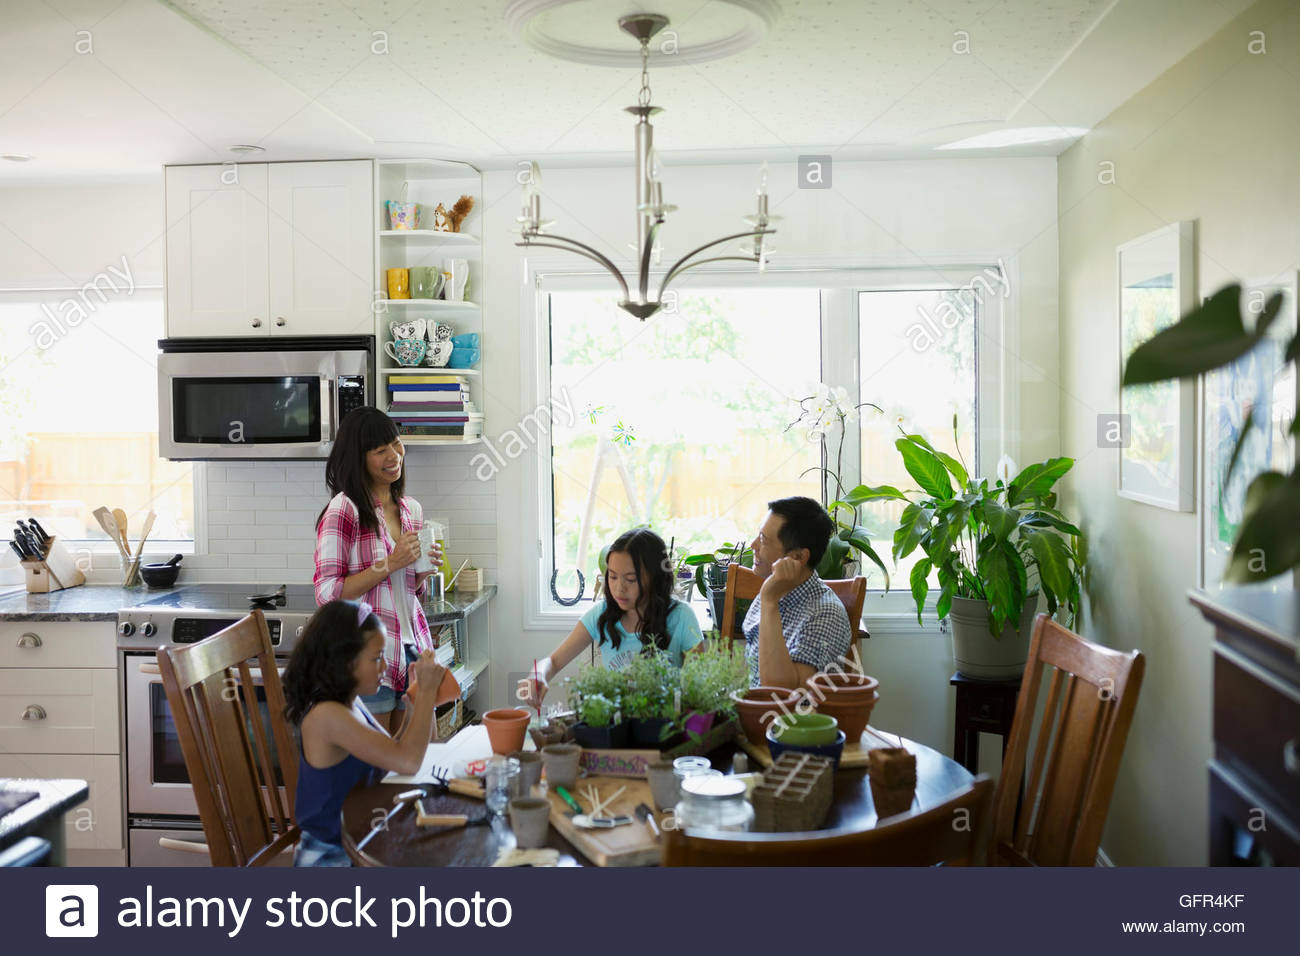 Family painting flowerpots at kitchen table - Stock Image